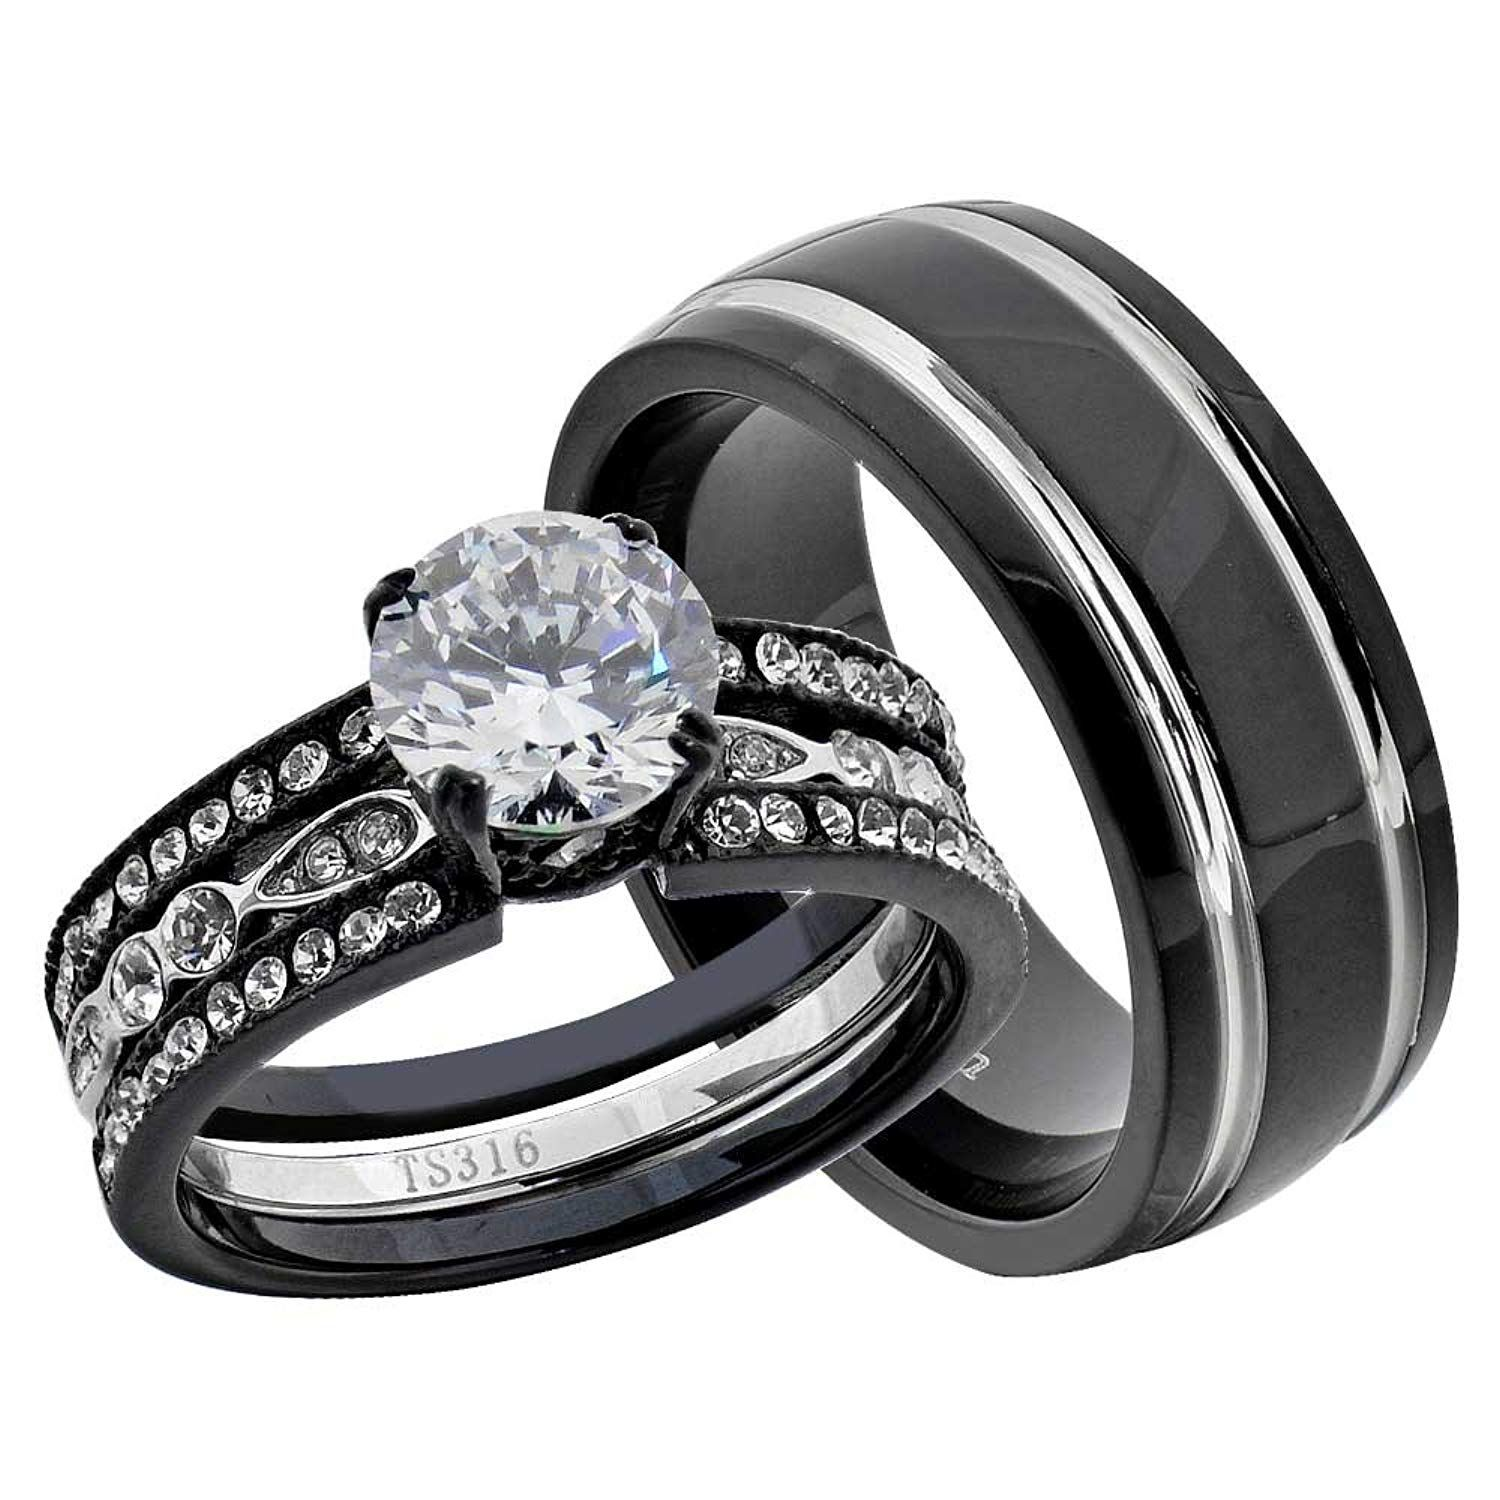 Flamereflection Stainless Steel Black Round Cubic Zirconia His Hers Wedding Ring Sets Stainless Ste Black Wedding Rings Wedding Ring Trio Sets Bridal Ring Sets